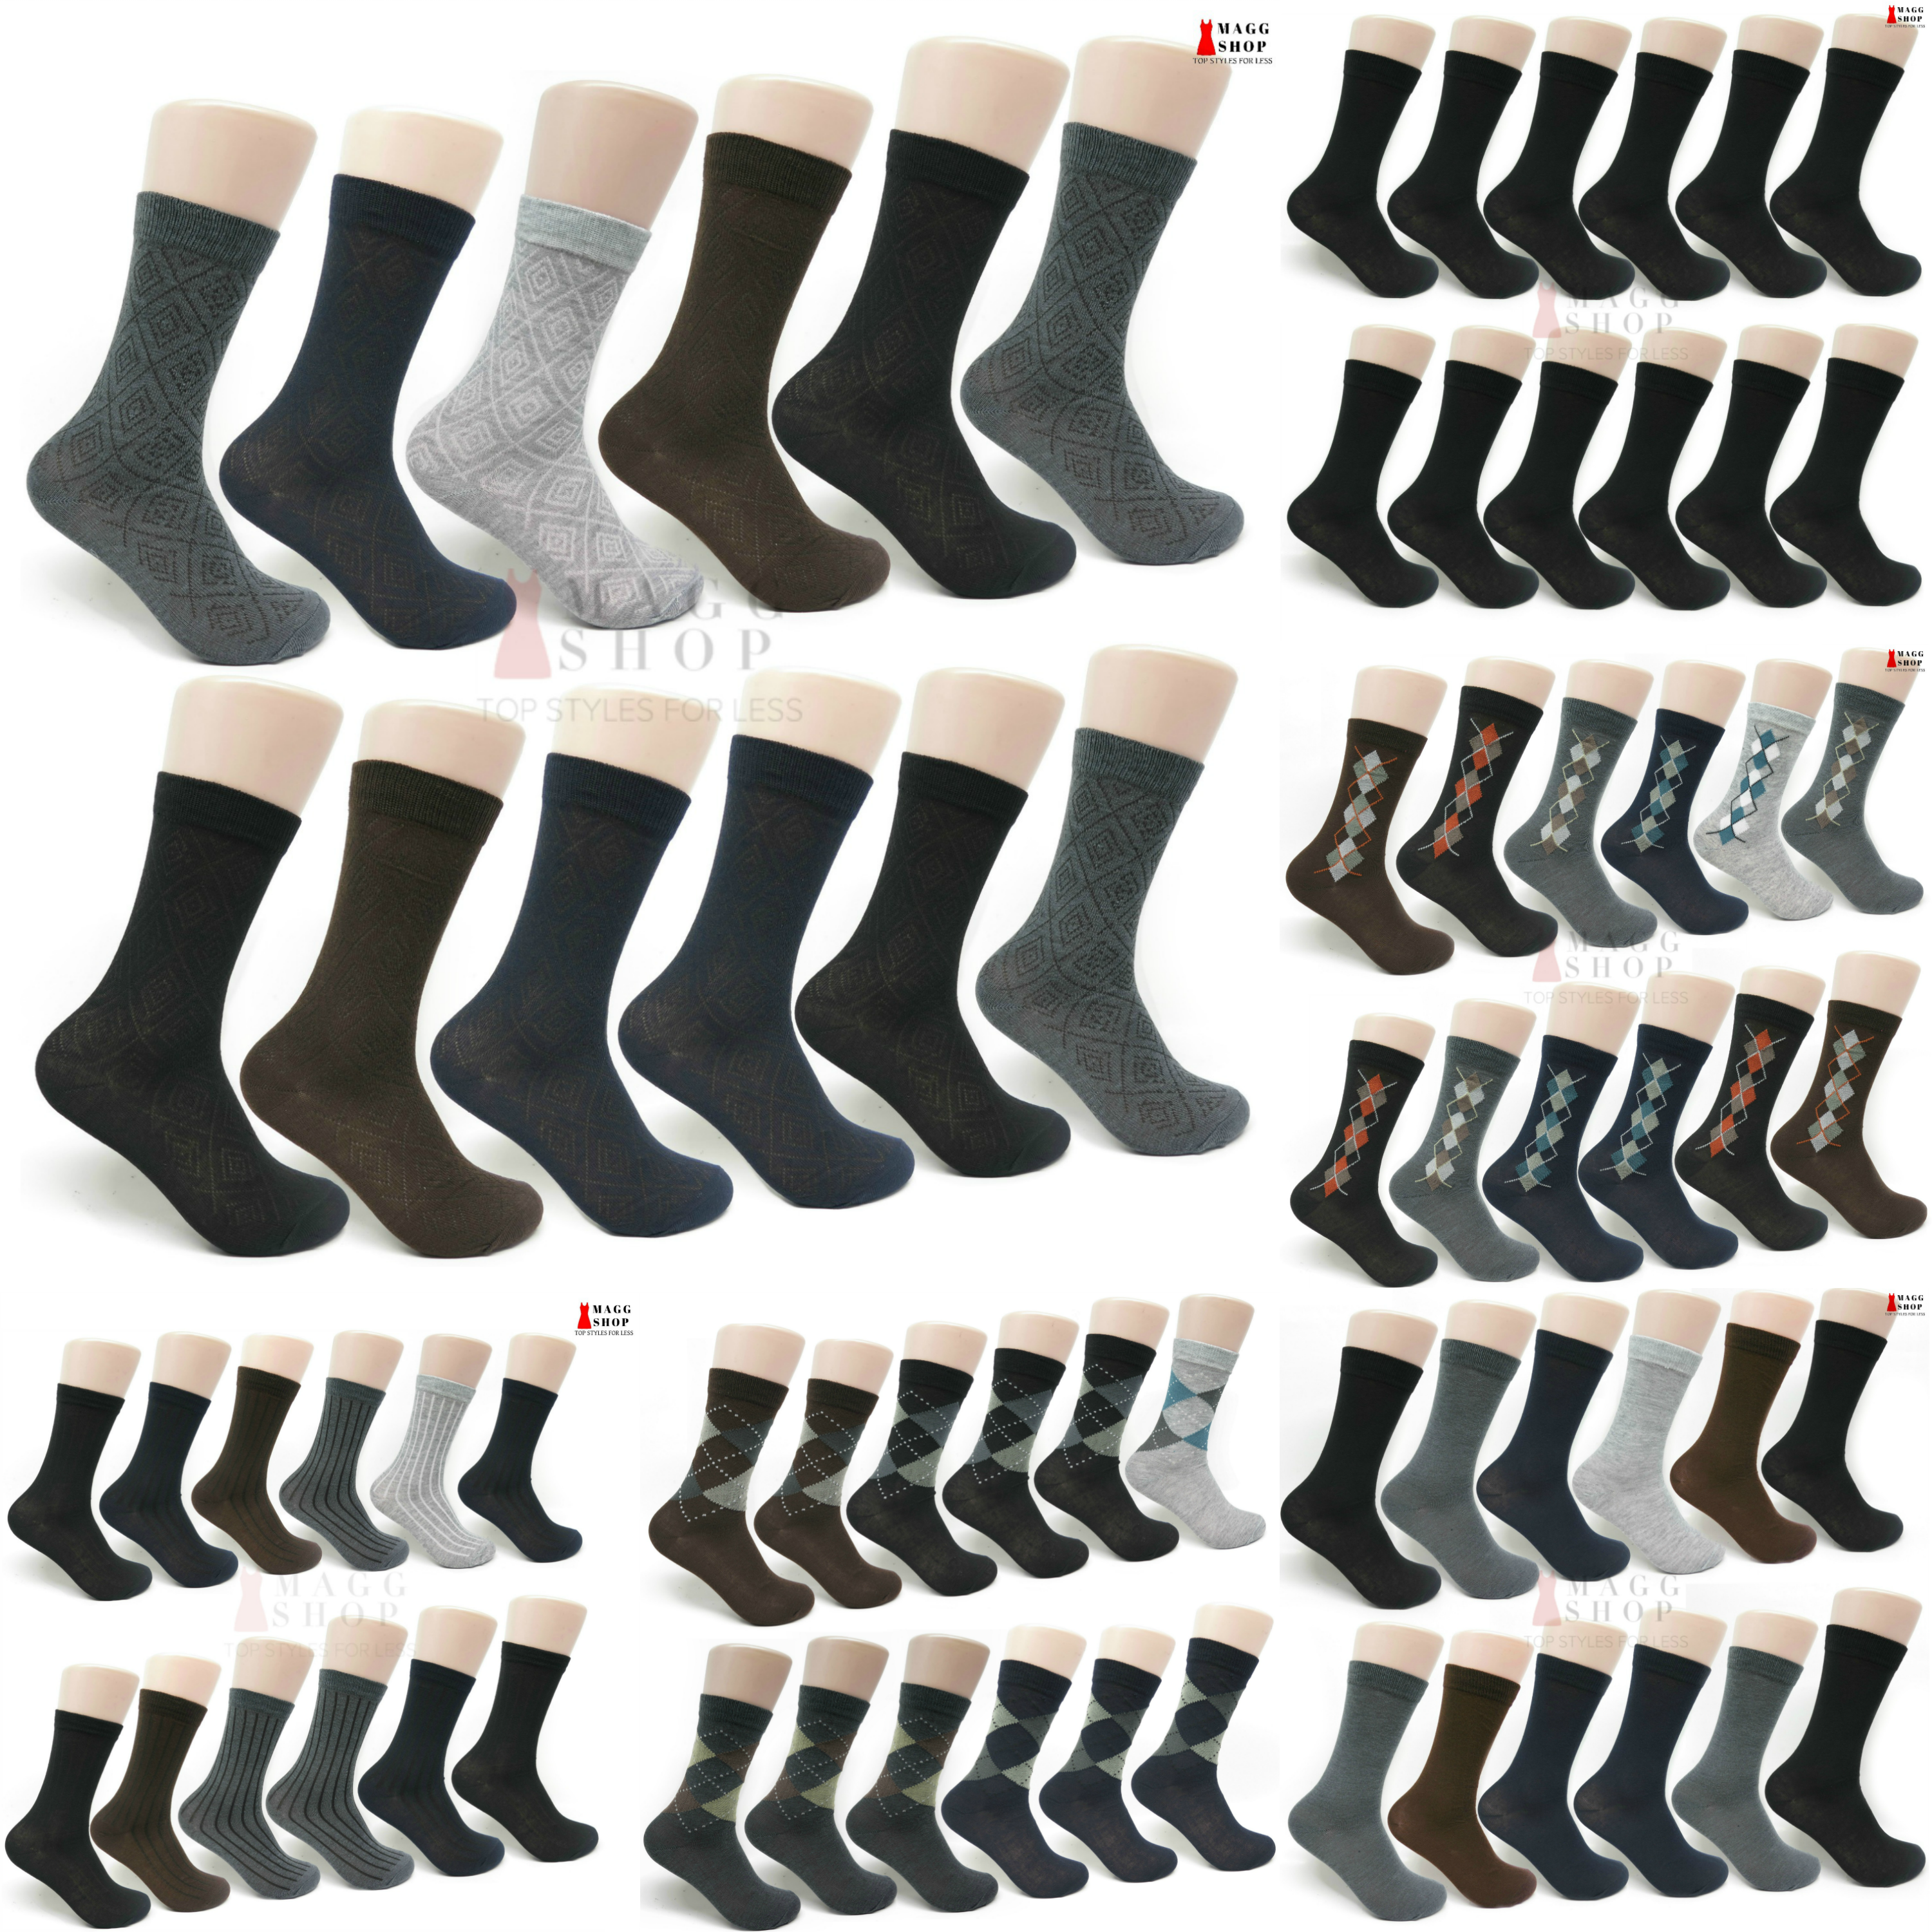 Men s 12-pack Cotton Classic Patterned and Solid Dress Socks